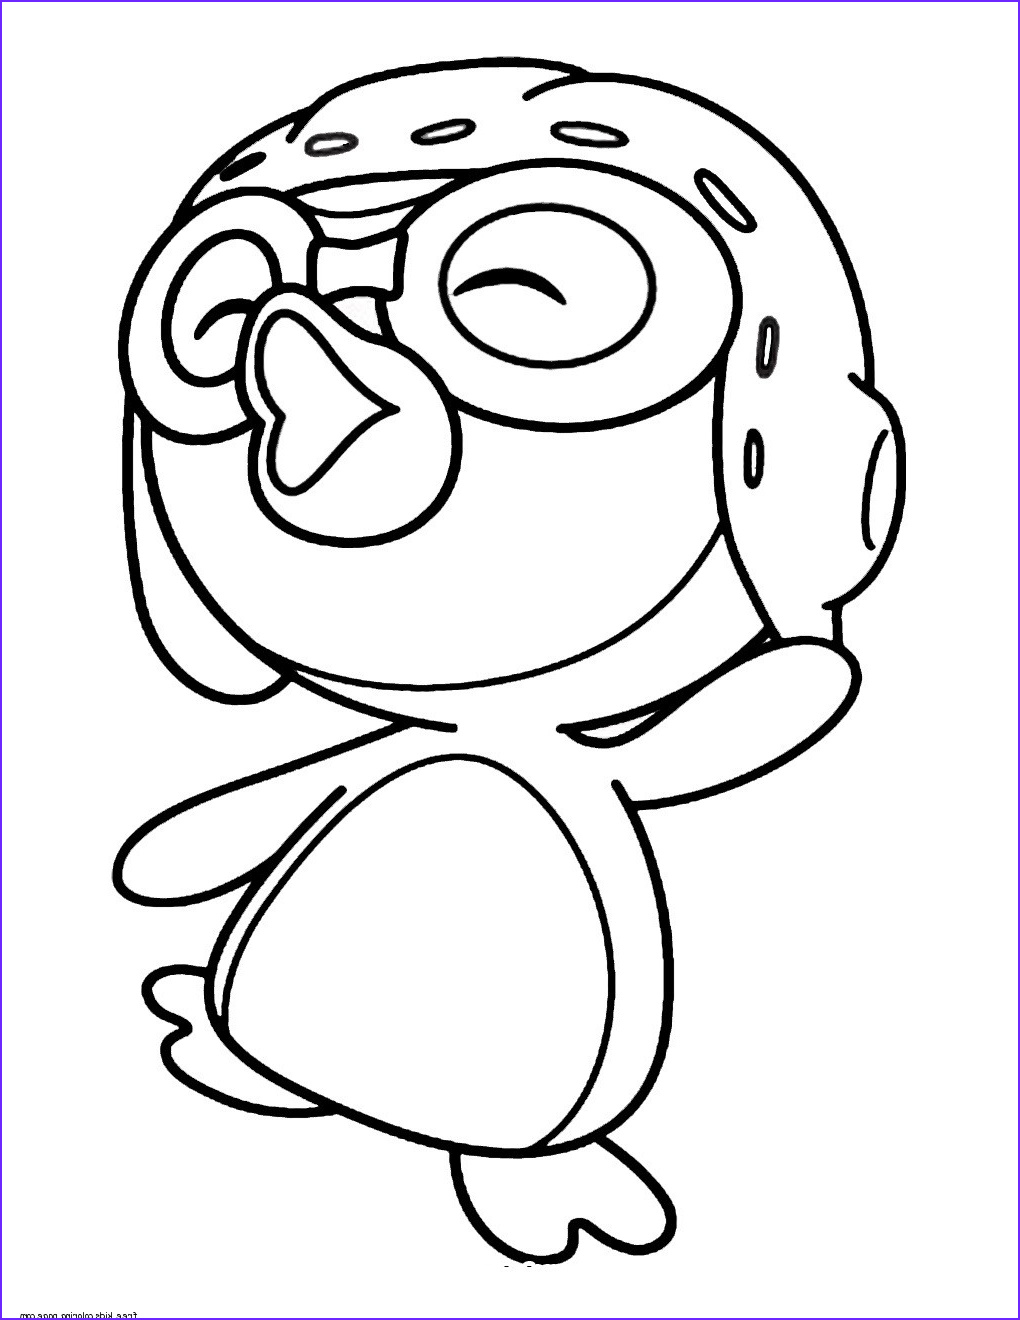 Free Printable Penguin Coloring Page Awesome Gallery Printable Pororo the Little Penguin Coloring Pages for